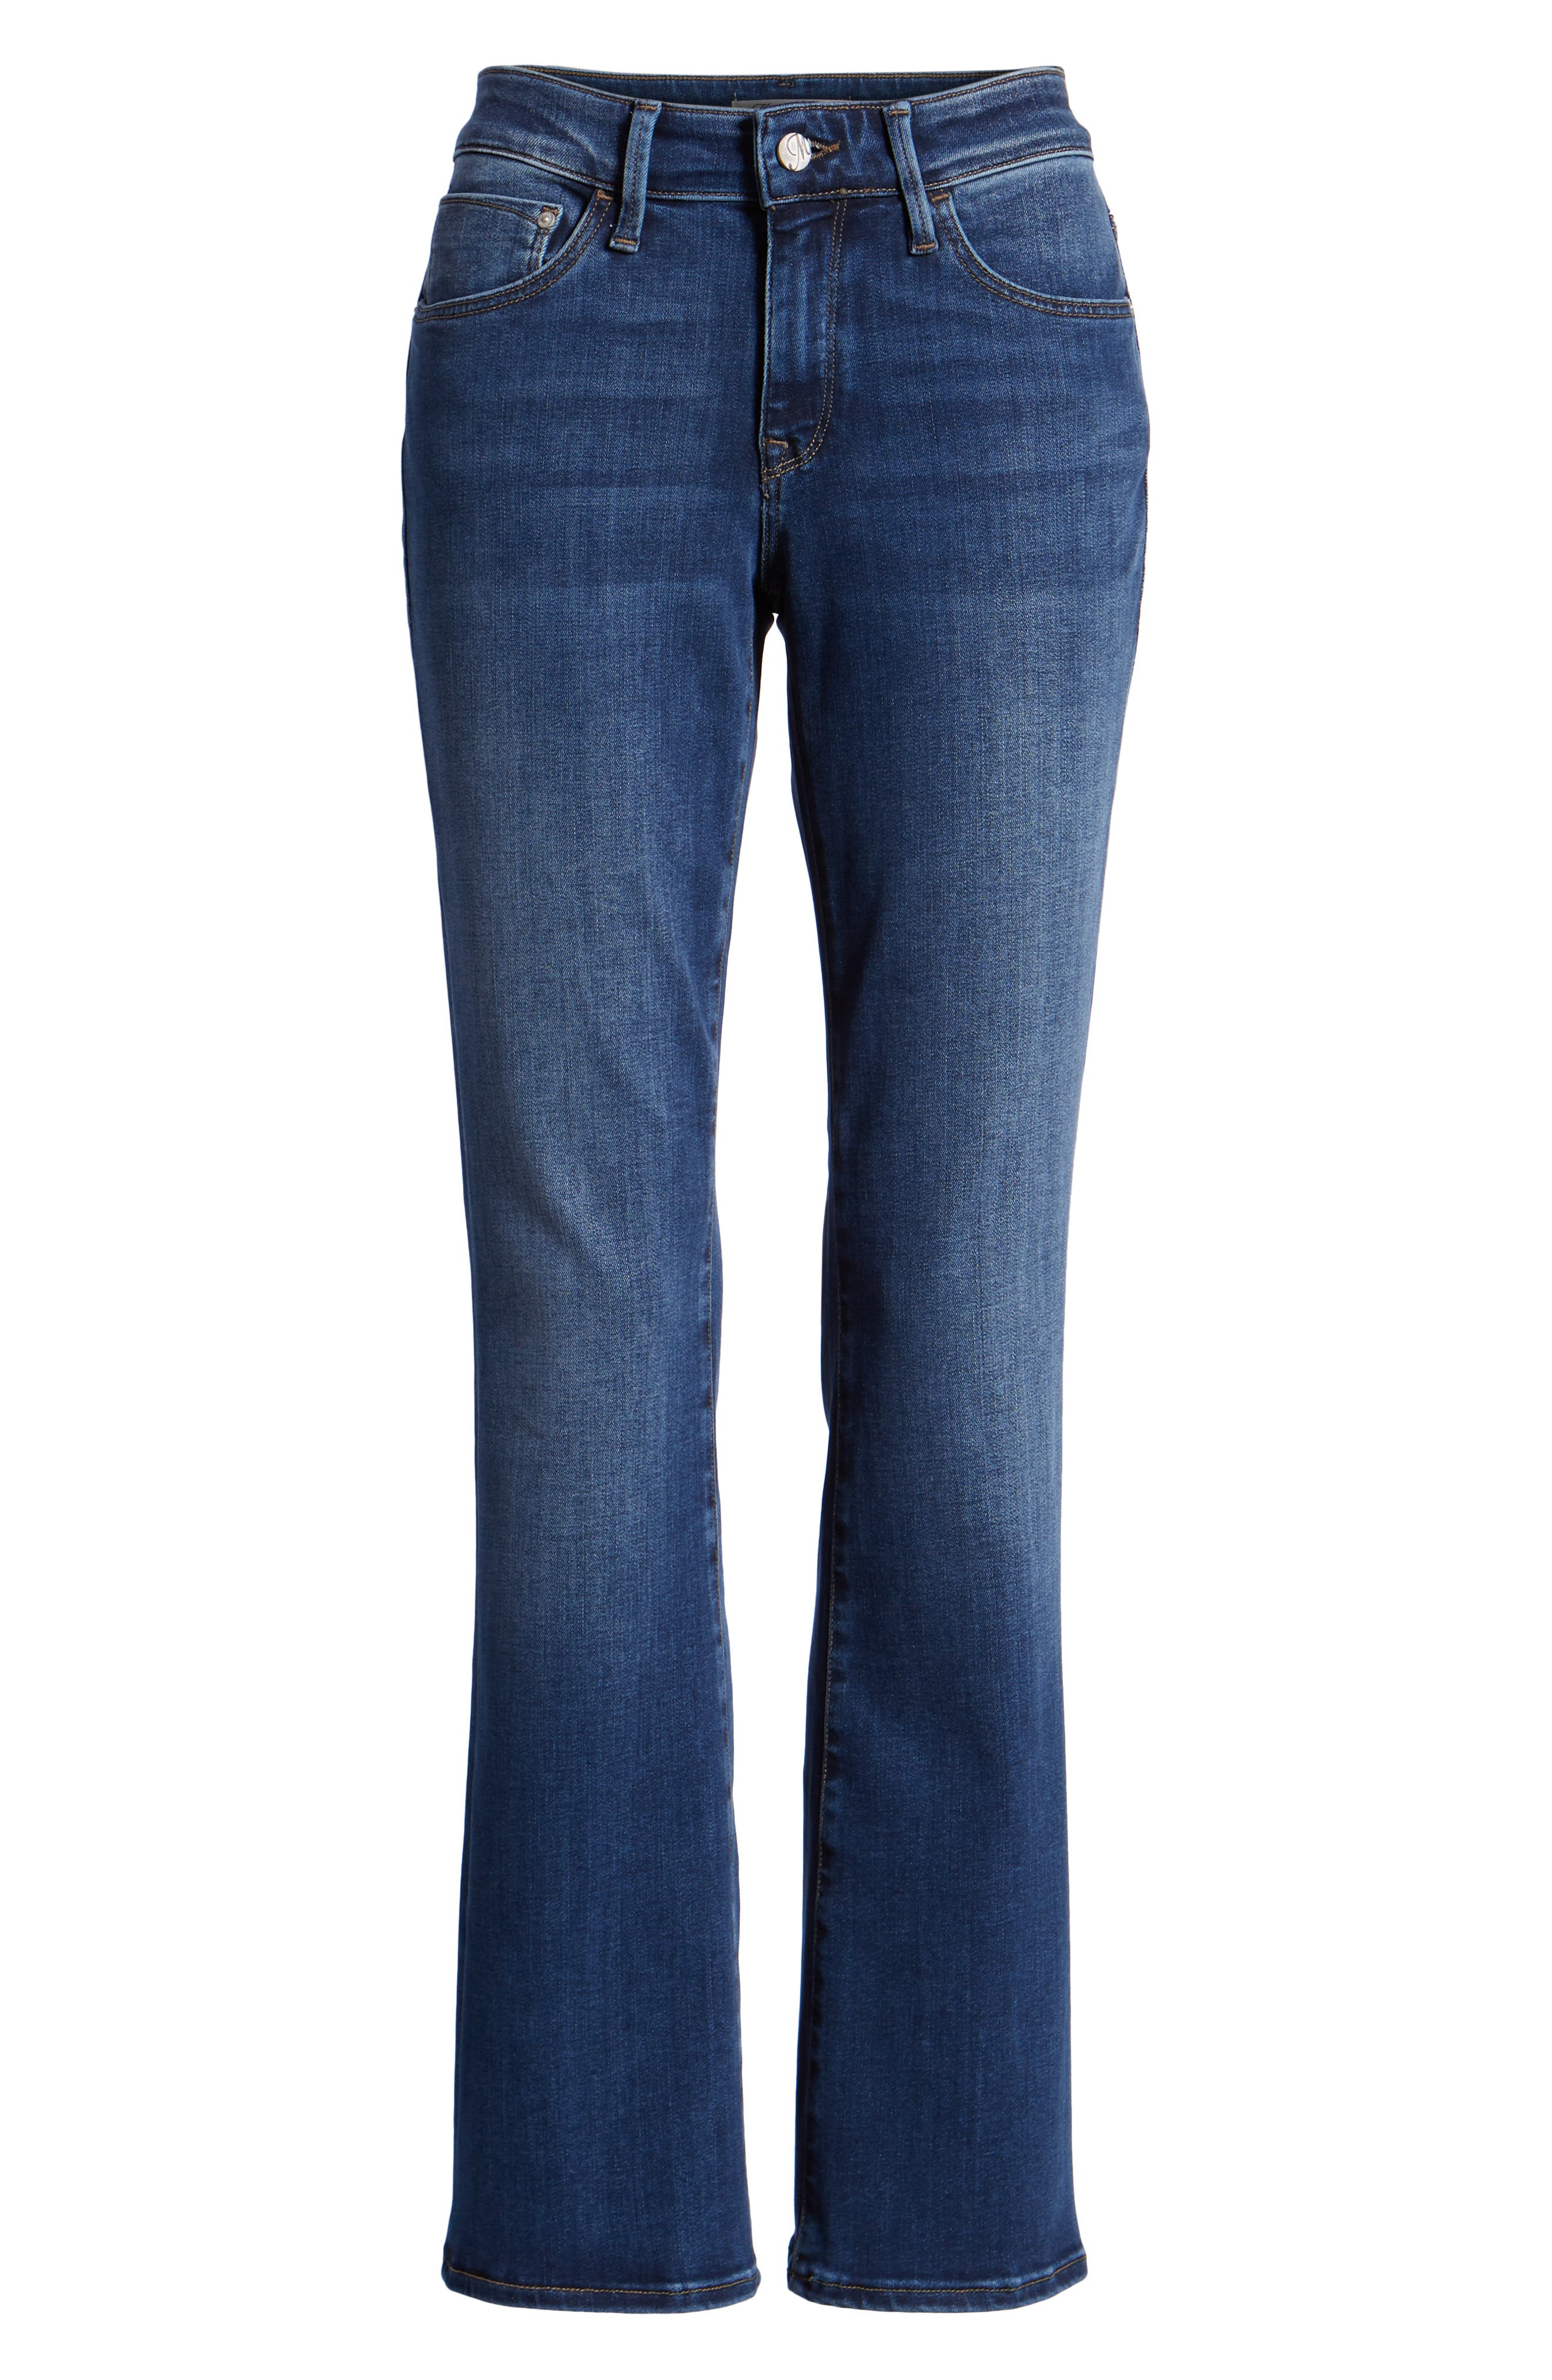 Molly Classic Bootcut Jeans,                             Alternate thumbnail 7, color,                             INDIGO SUPERSOFT